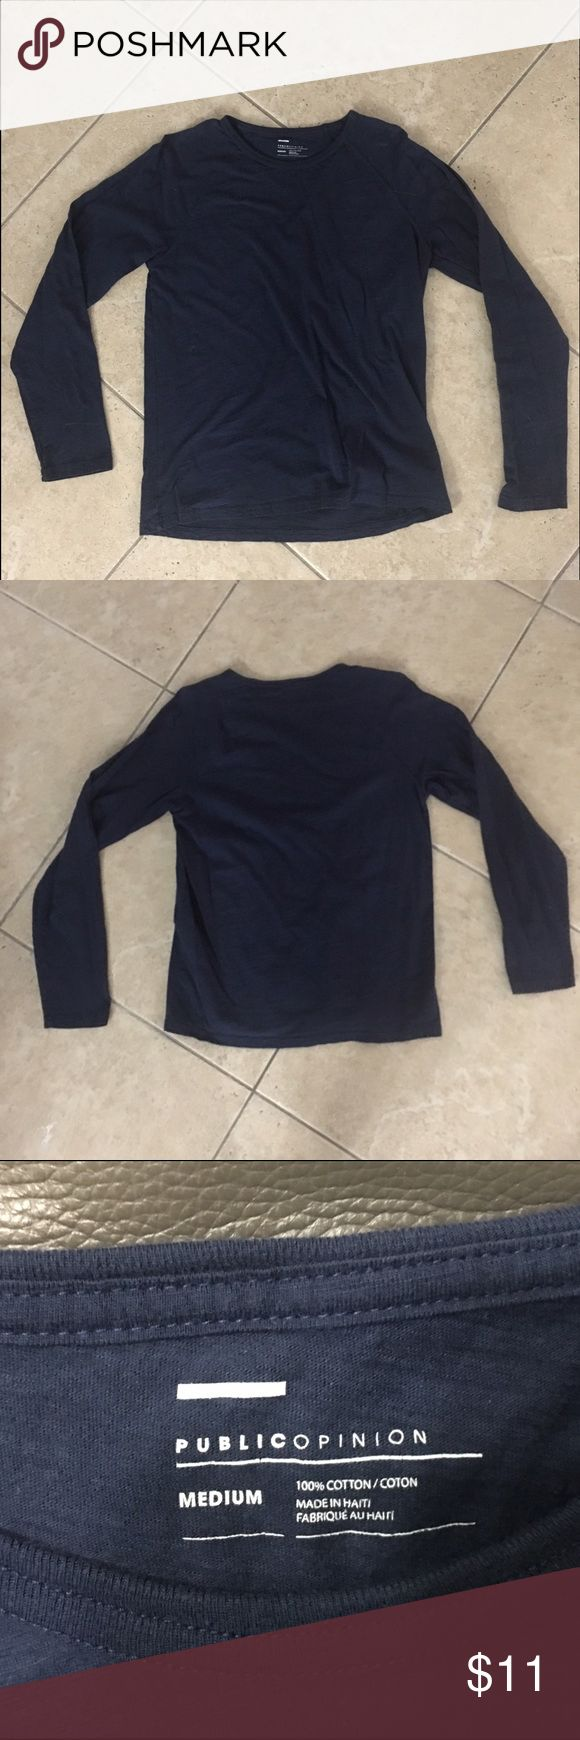 "Long sleeve Navy Blue Cotton T-shirt This is a long sleeve Navy Blue ""Public Opinion"" brand 100% cotton form fitting T-shirt. Very comfortable, worn 1 time. Public Opinion Shirts Tees - Long Sleeve"